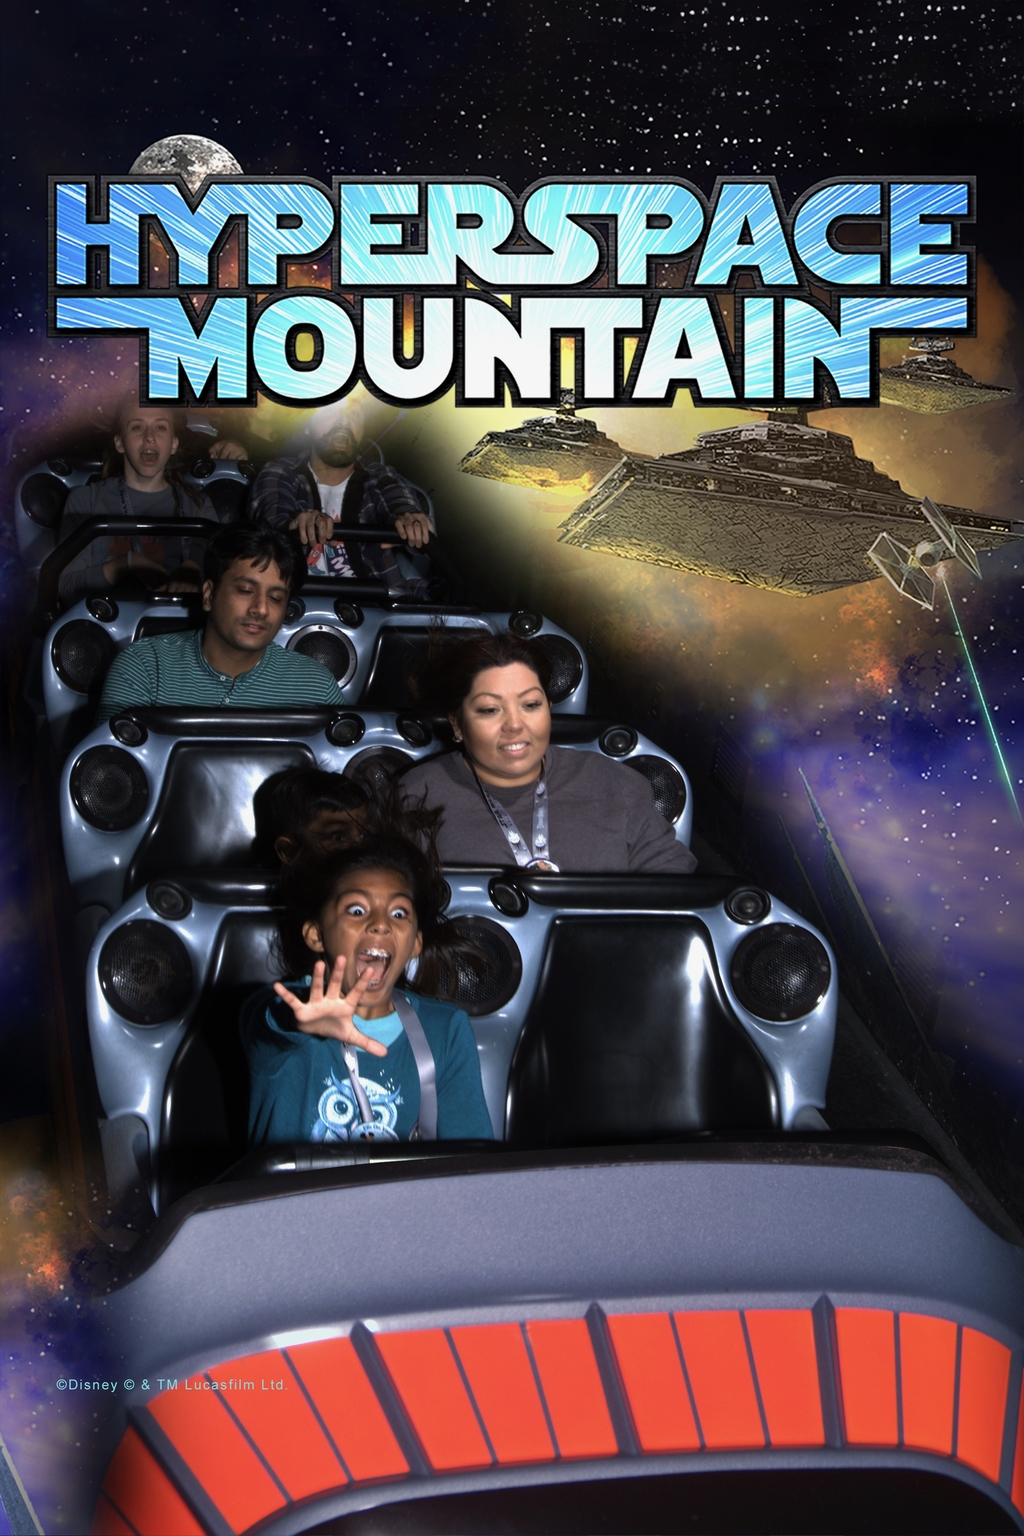 Space mountain, a space-... Magical Land of Disney. MemExp Blog